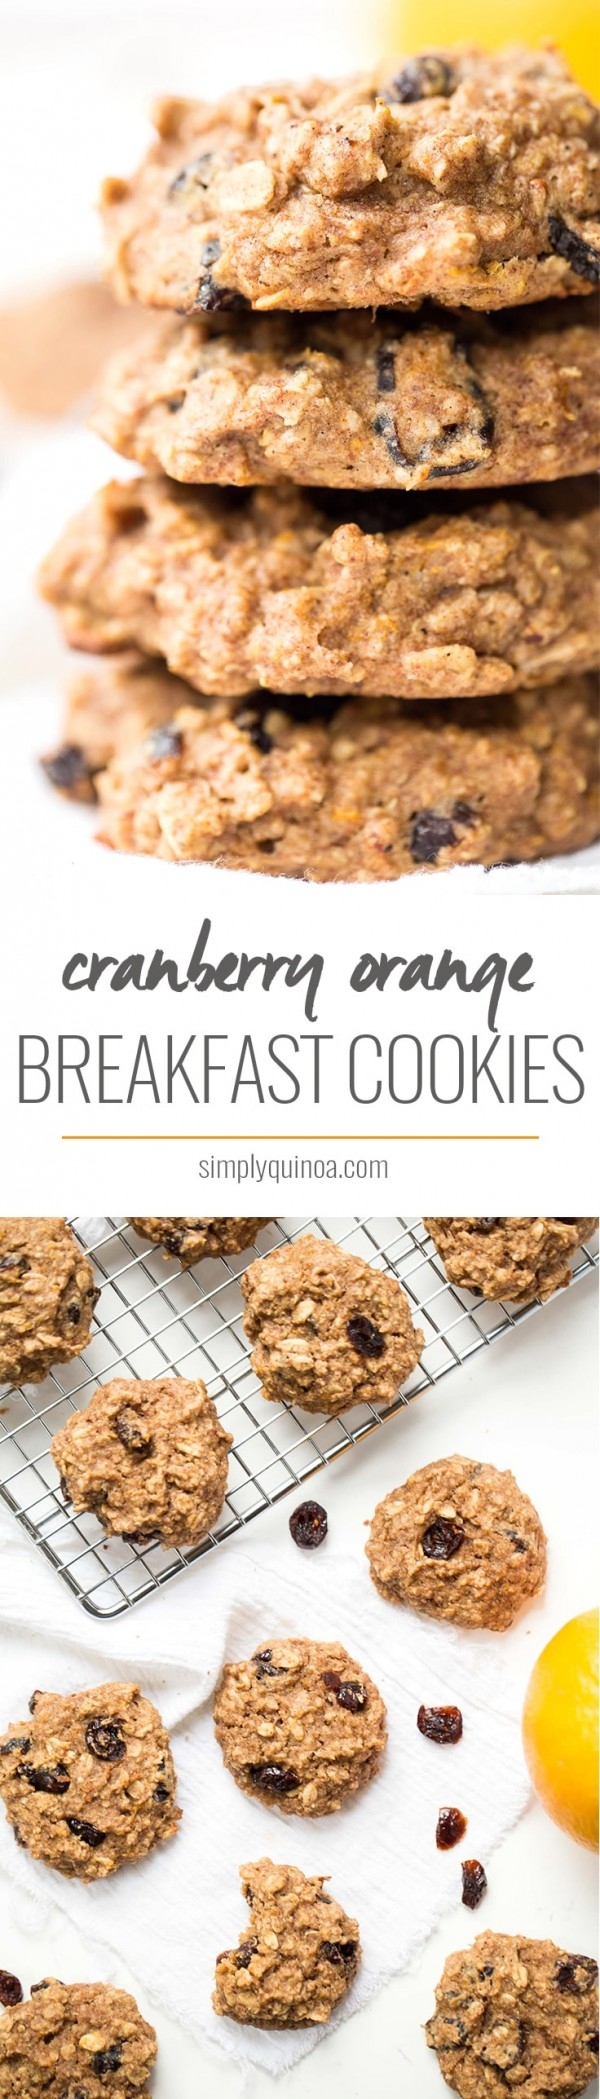 These AMAZING cranberry orange quinoa breakfast cookies have banana, almond butter, orange zest and tart cranberries, and they're actually HEALTHY | gluten-free + vegan